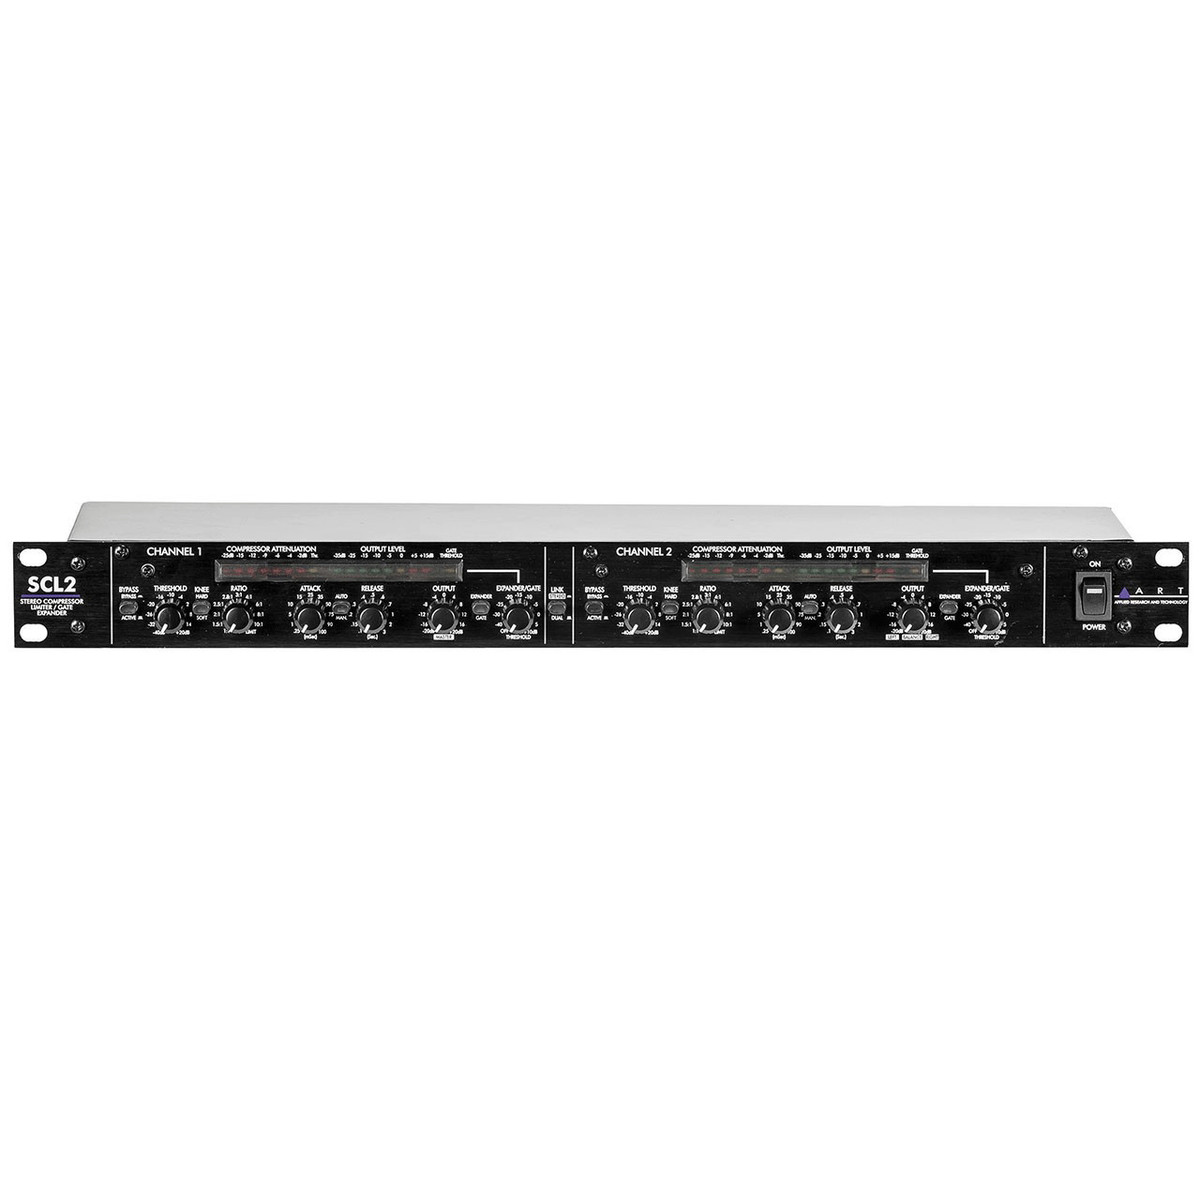 Click to view product details and reviews for Art Scl2 Dual Stereo Compressor Limiter Expander Gate.